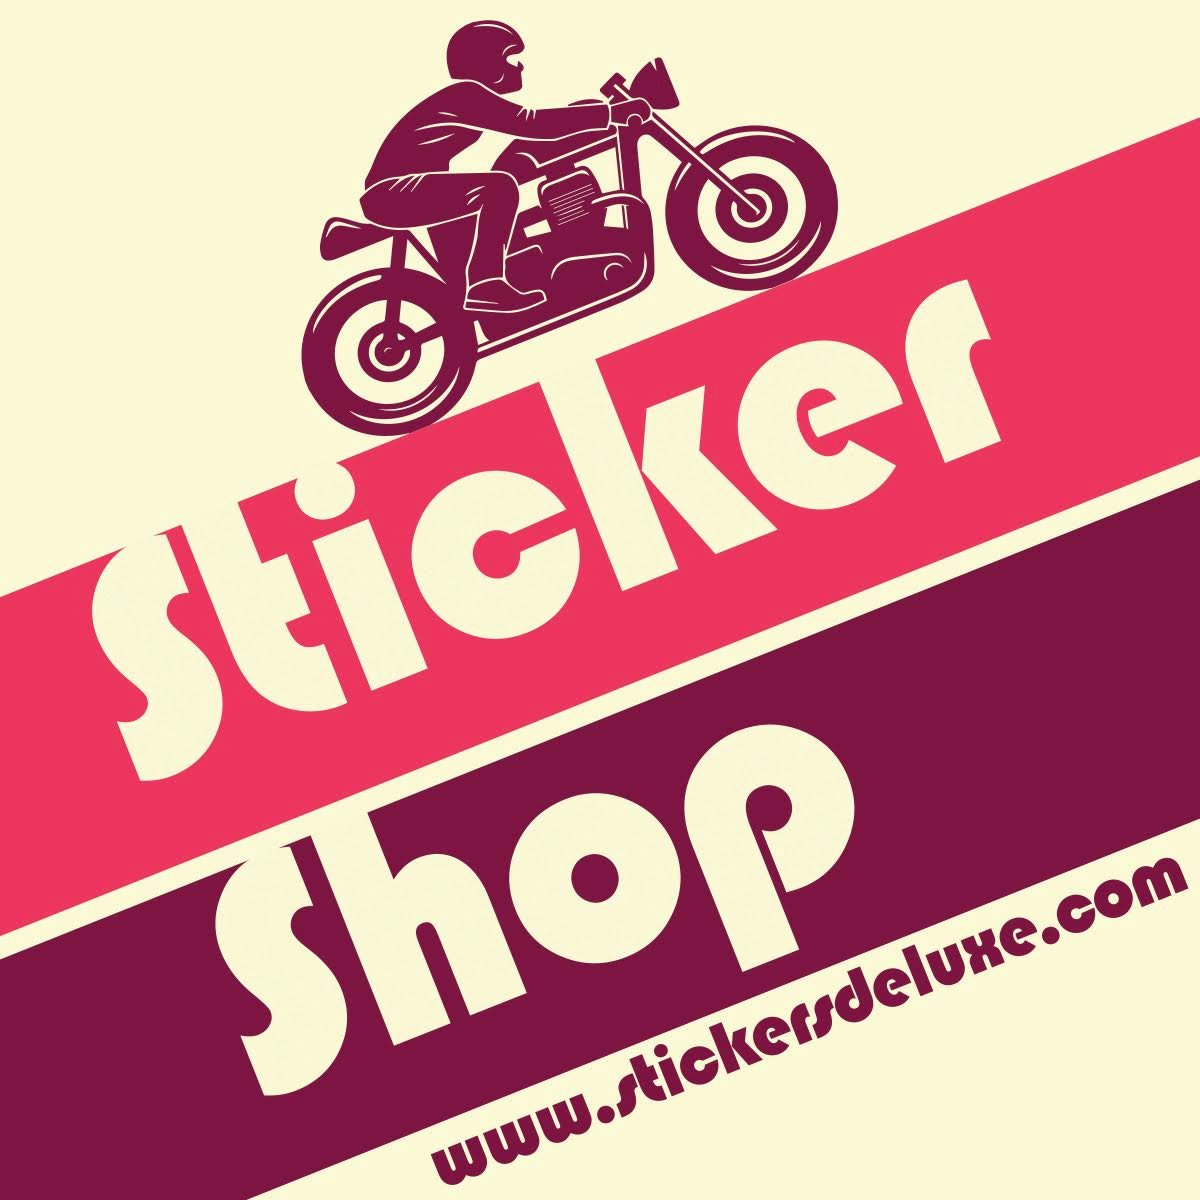 Stickers Deluxe Stickers & apparel, finest quality...